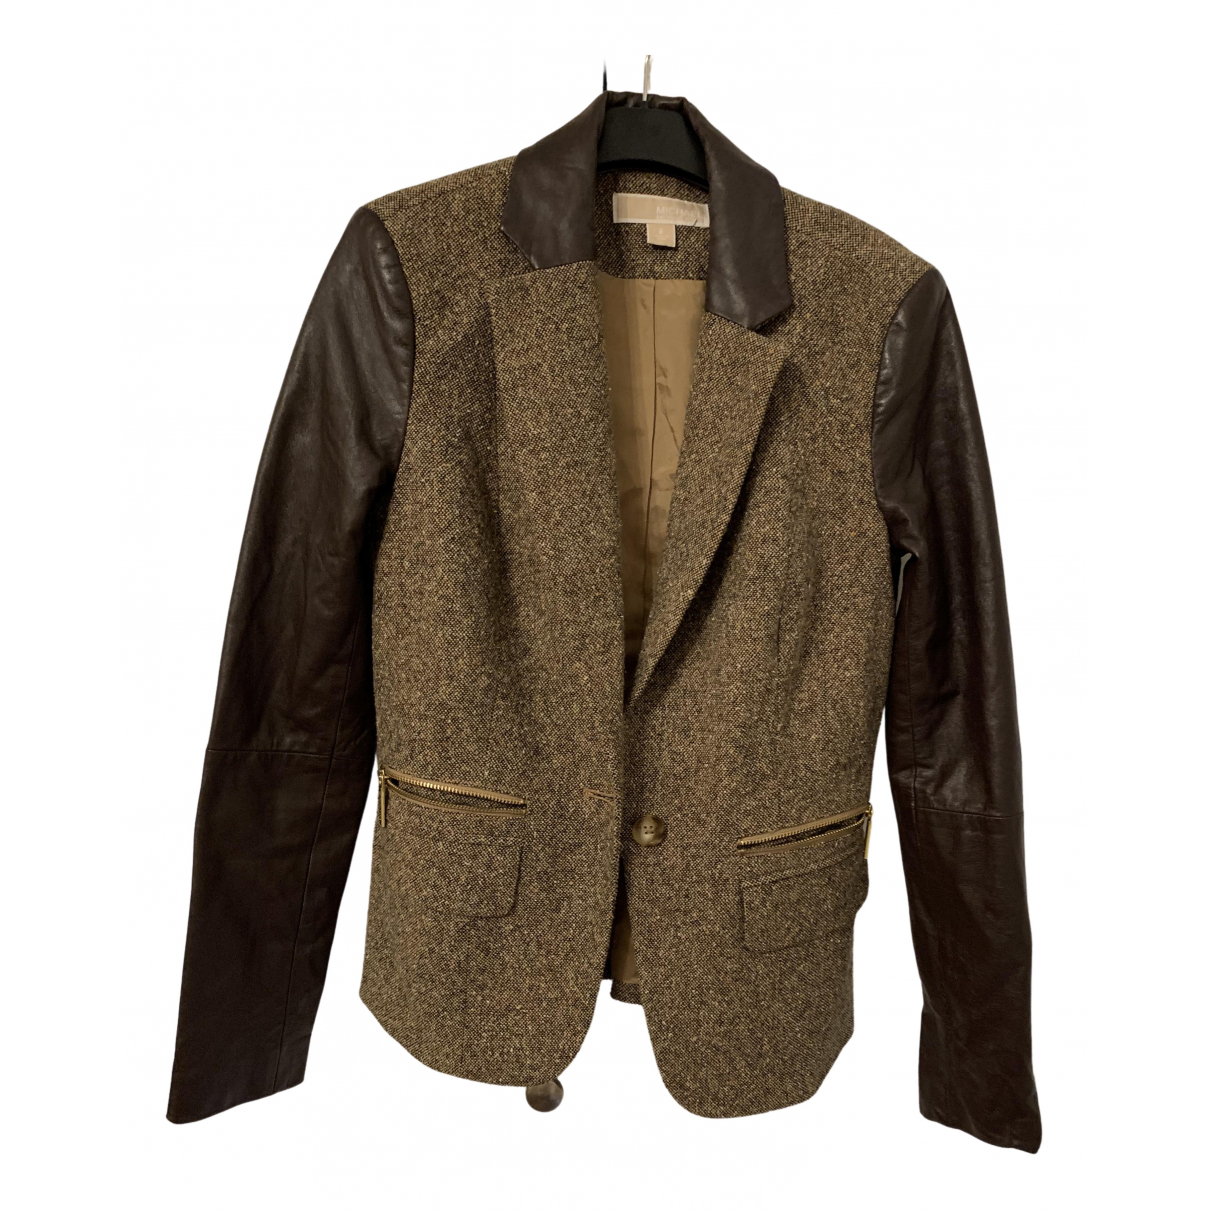 Michael Kors \N Jacke in  Braun Tweed